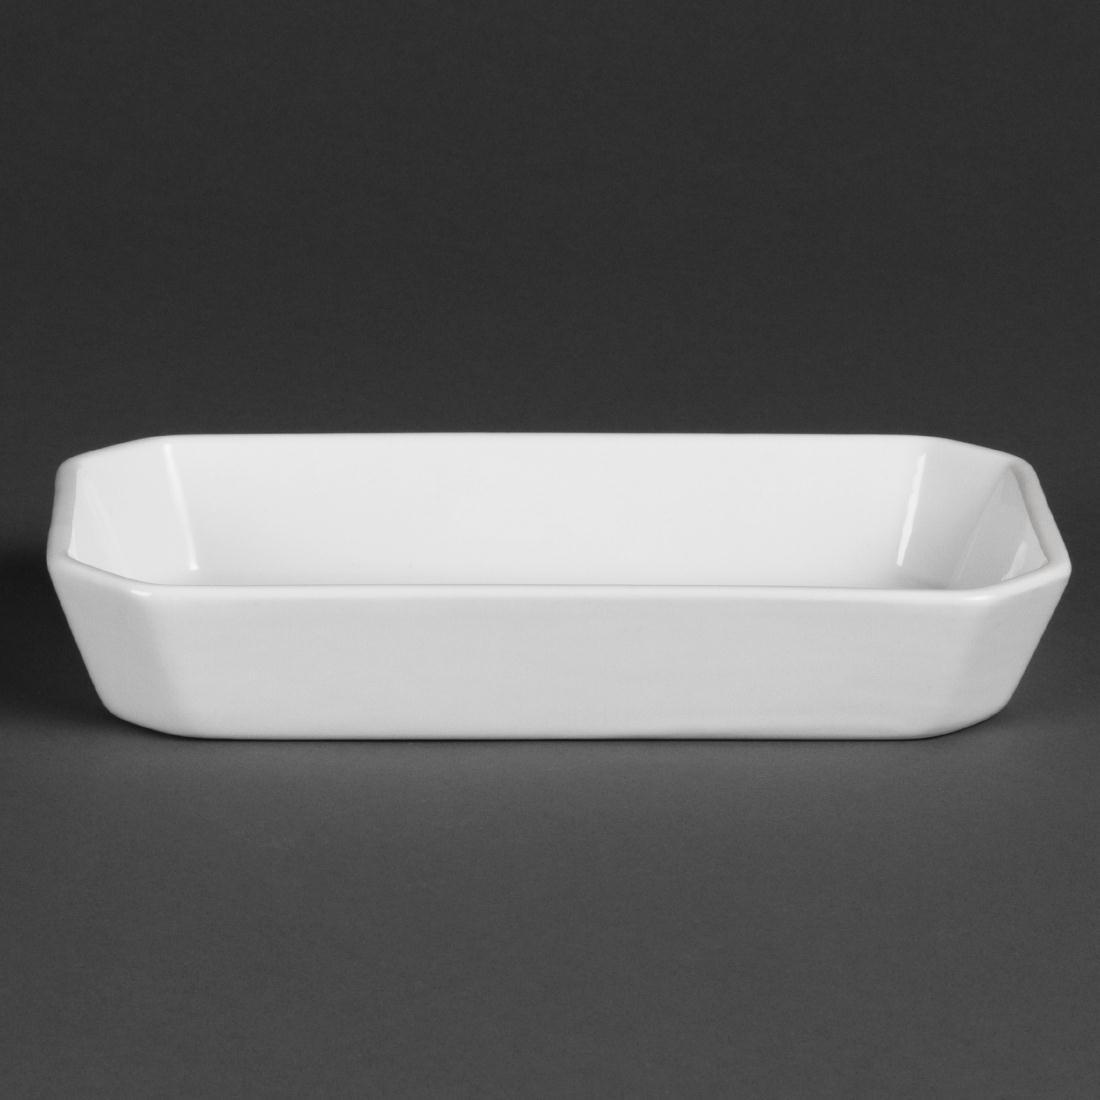 W413 - Olympia Whiteware Oblong Hors d'Oeuvre Dishes 213mm - Case 6 - W413